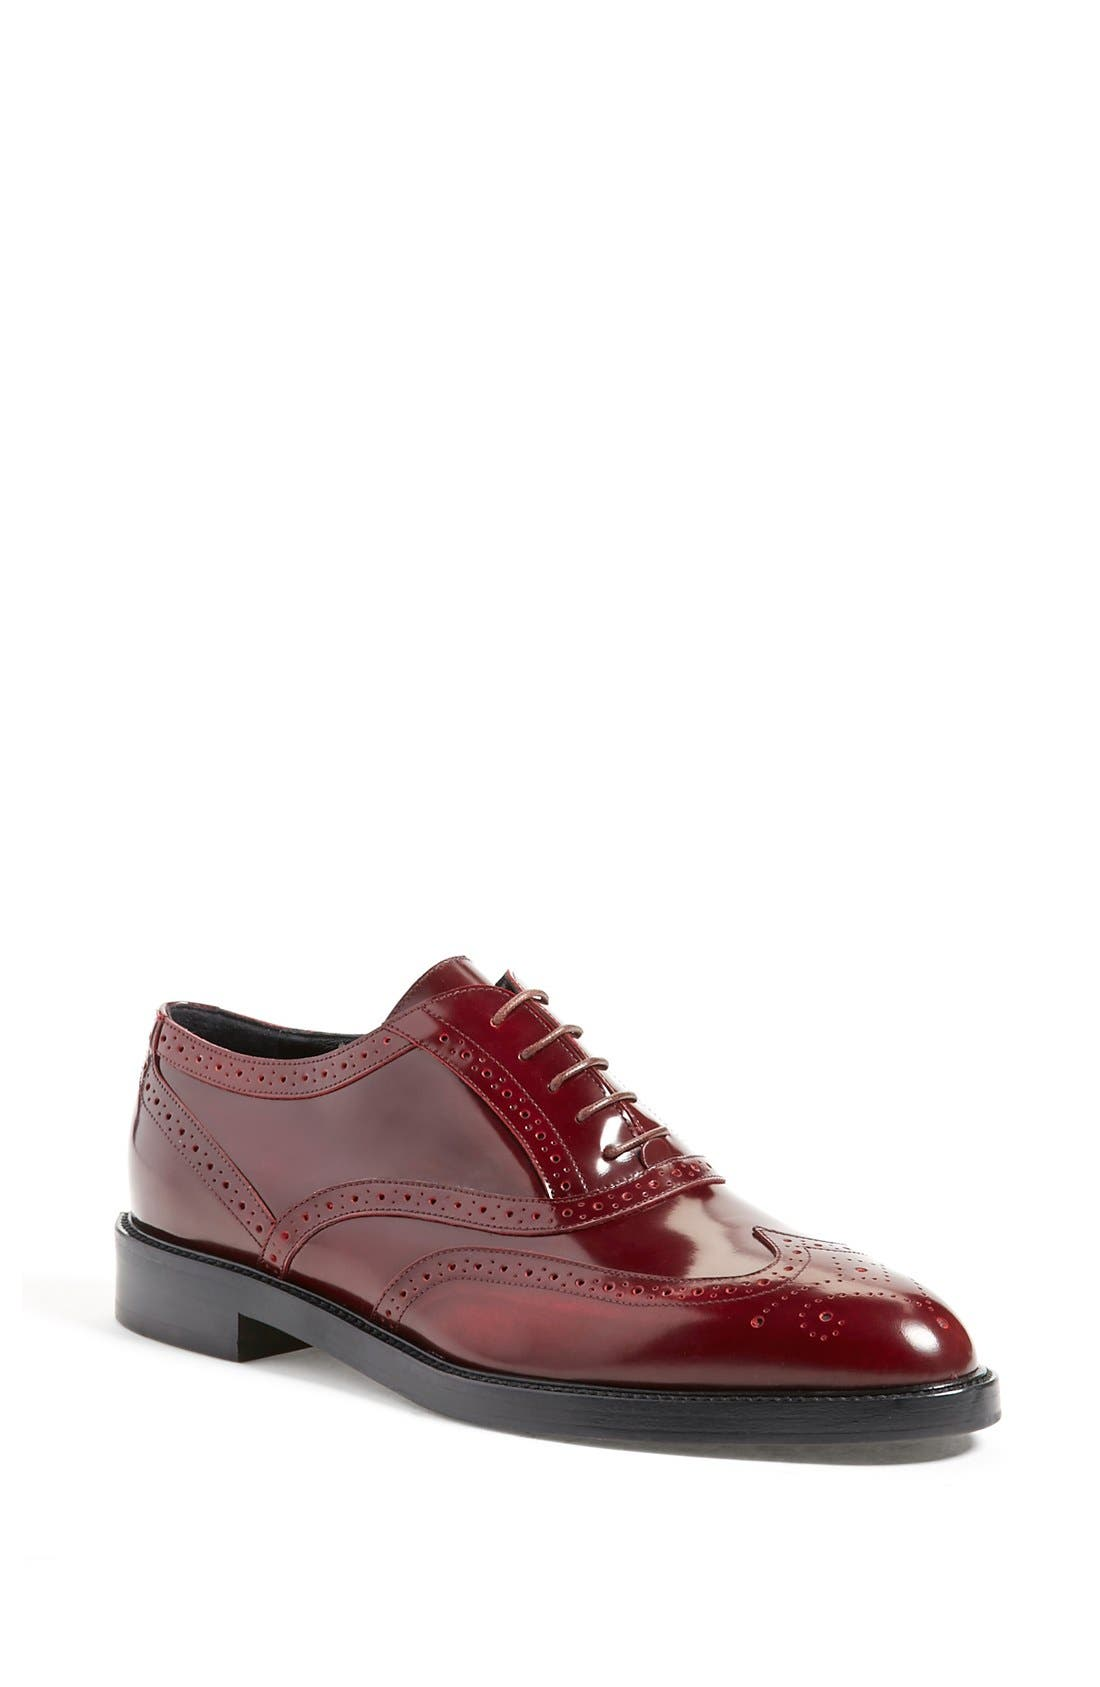 Alternate Image 1 Selected - Burberry 'Gennie' Lace-Up Oxford (Women)